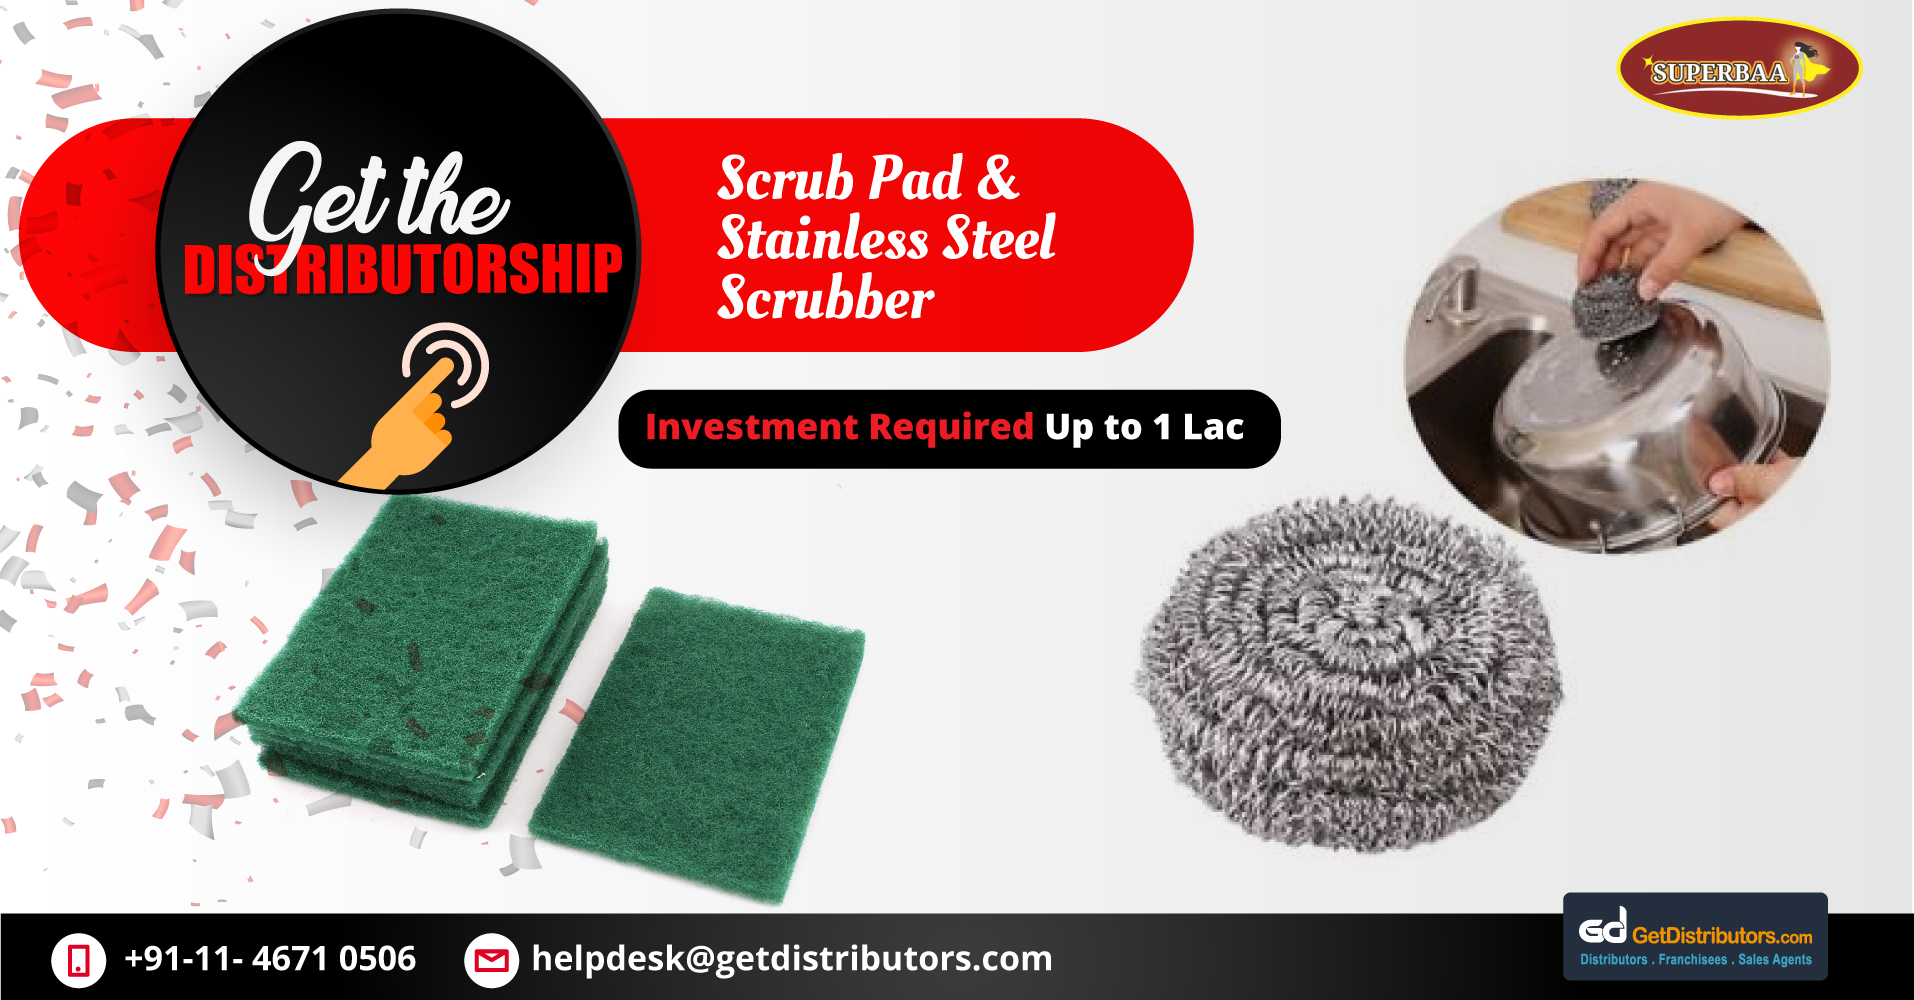 Heavy Duty Scrubbers & Scrub Pads Distributorship At Affordable Prices